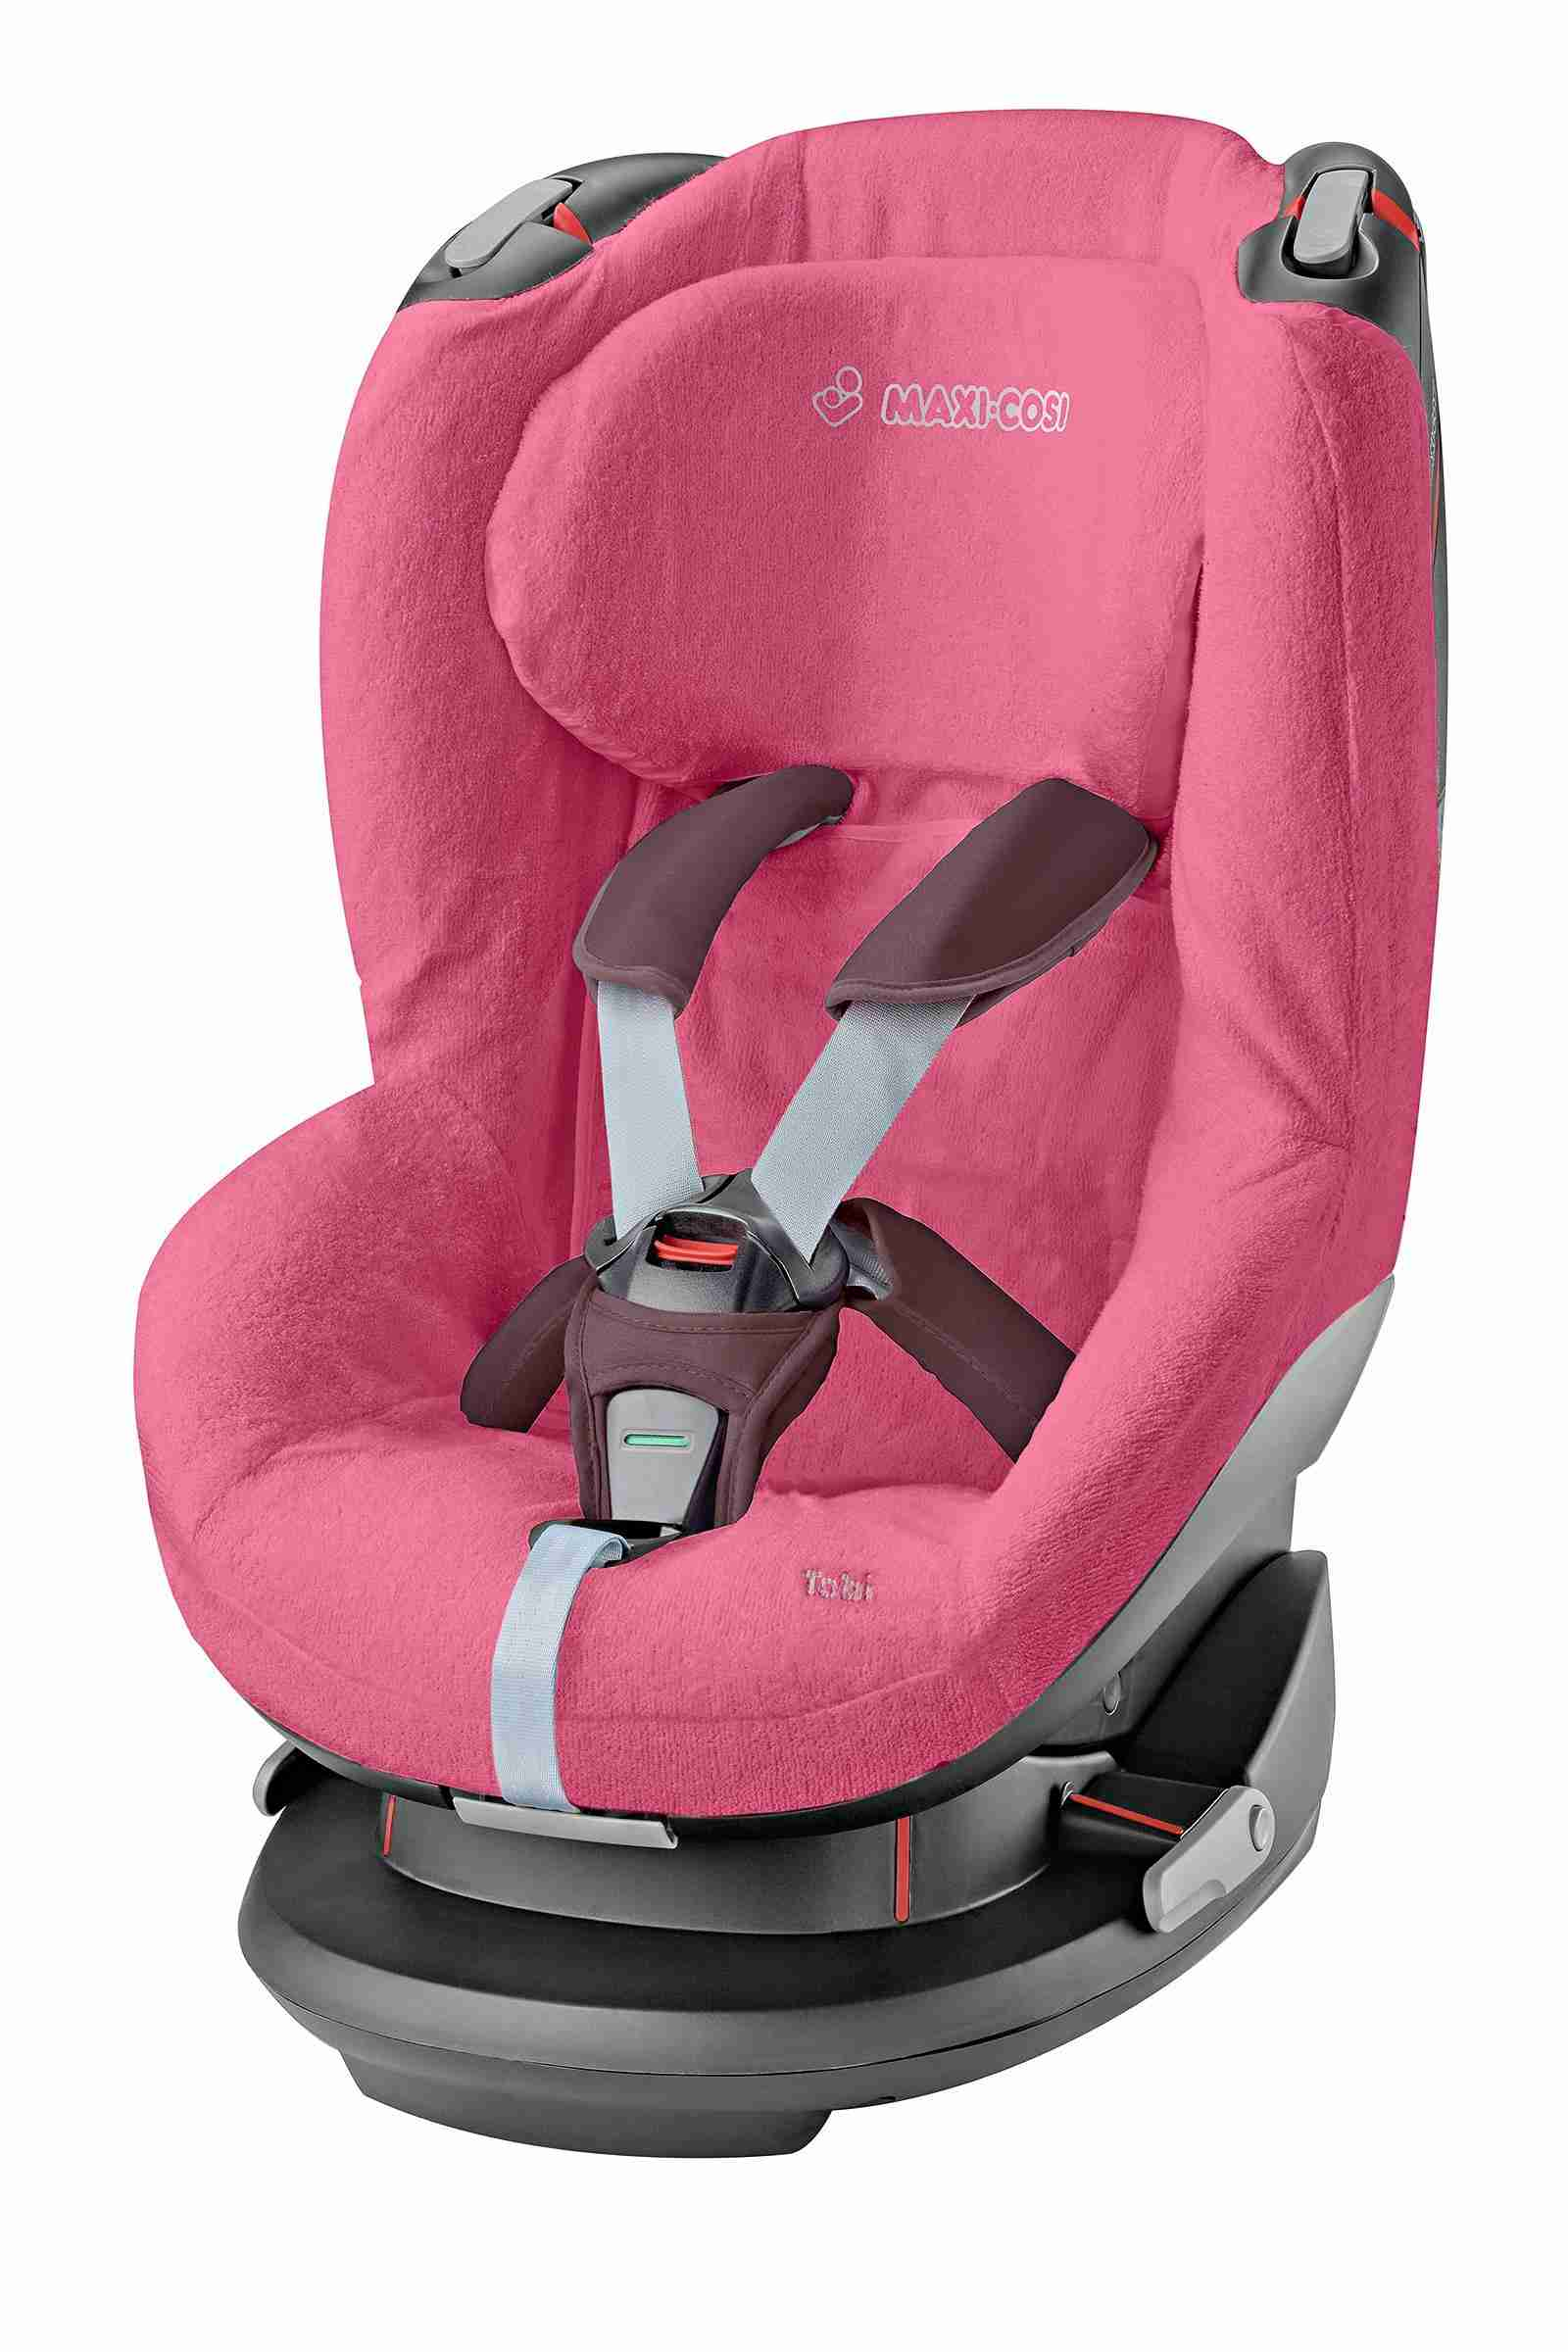 maxi cosi tobi car seat black reflection reviews velcromag. Black Bedroom Furniture Sets. Home Design Ideas